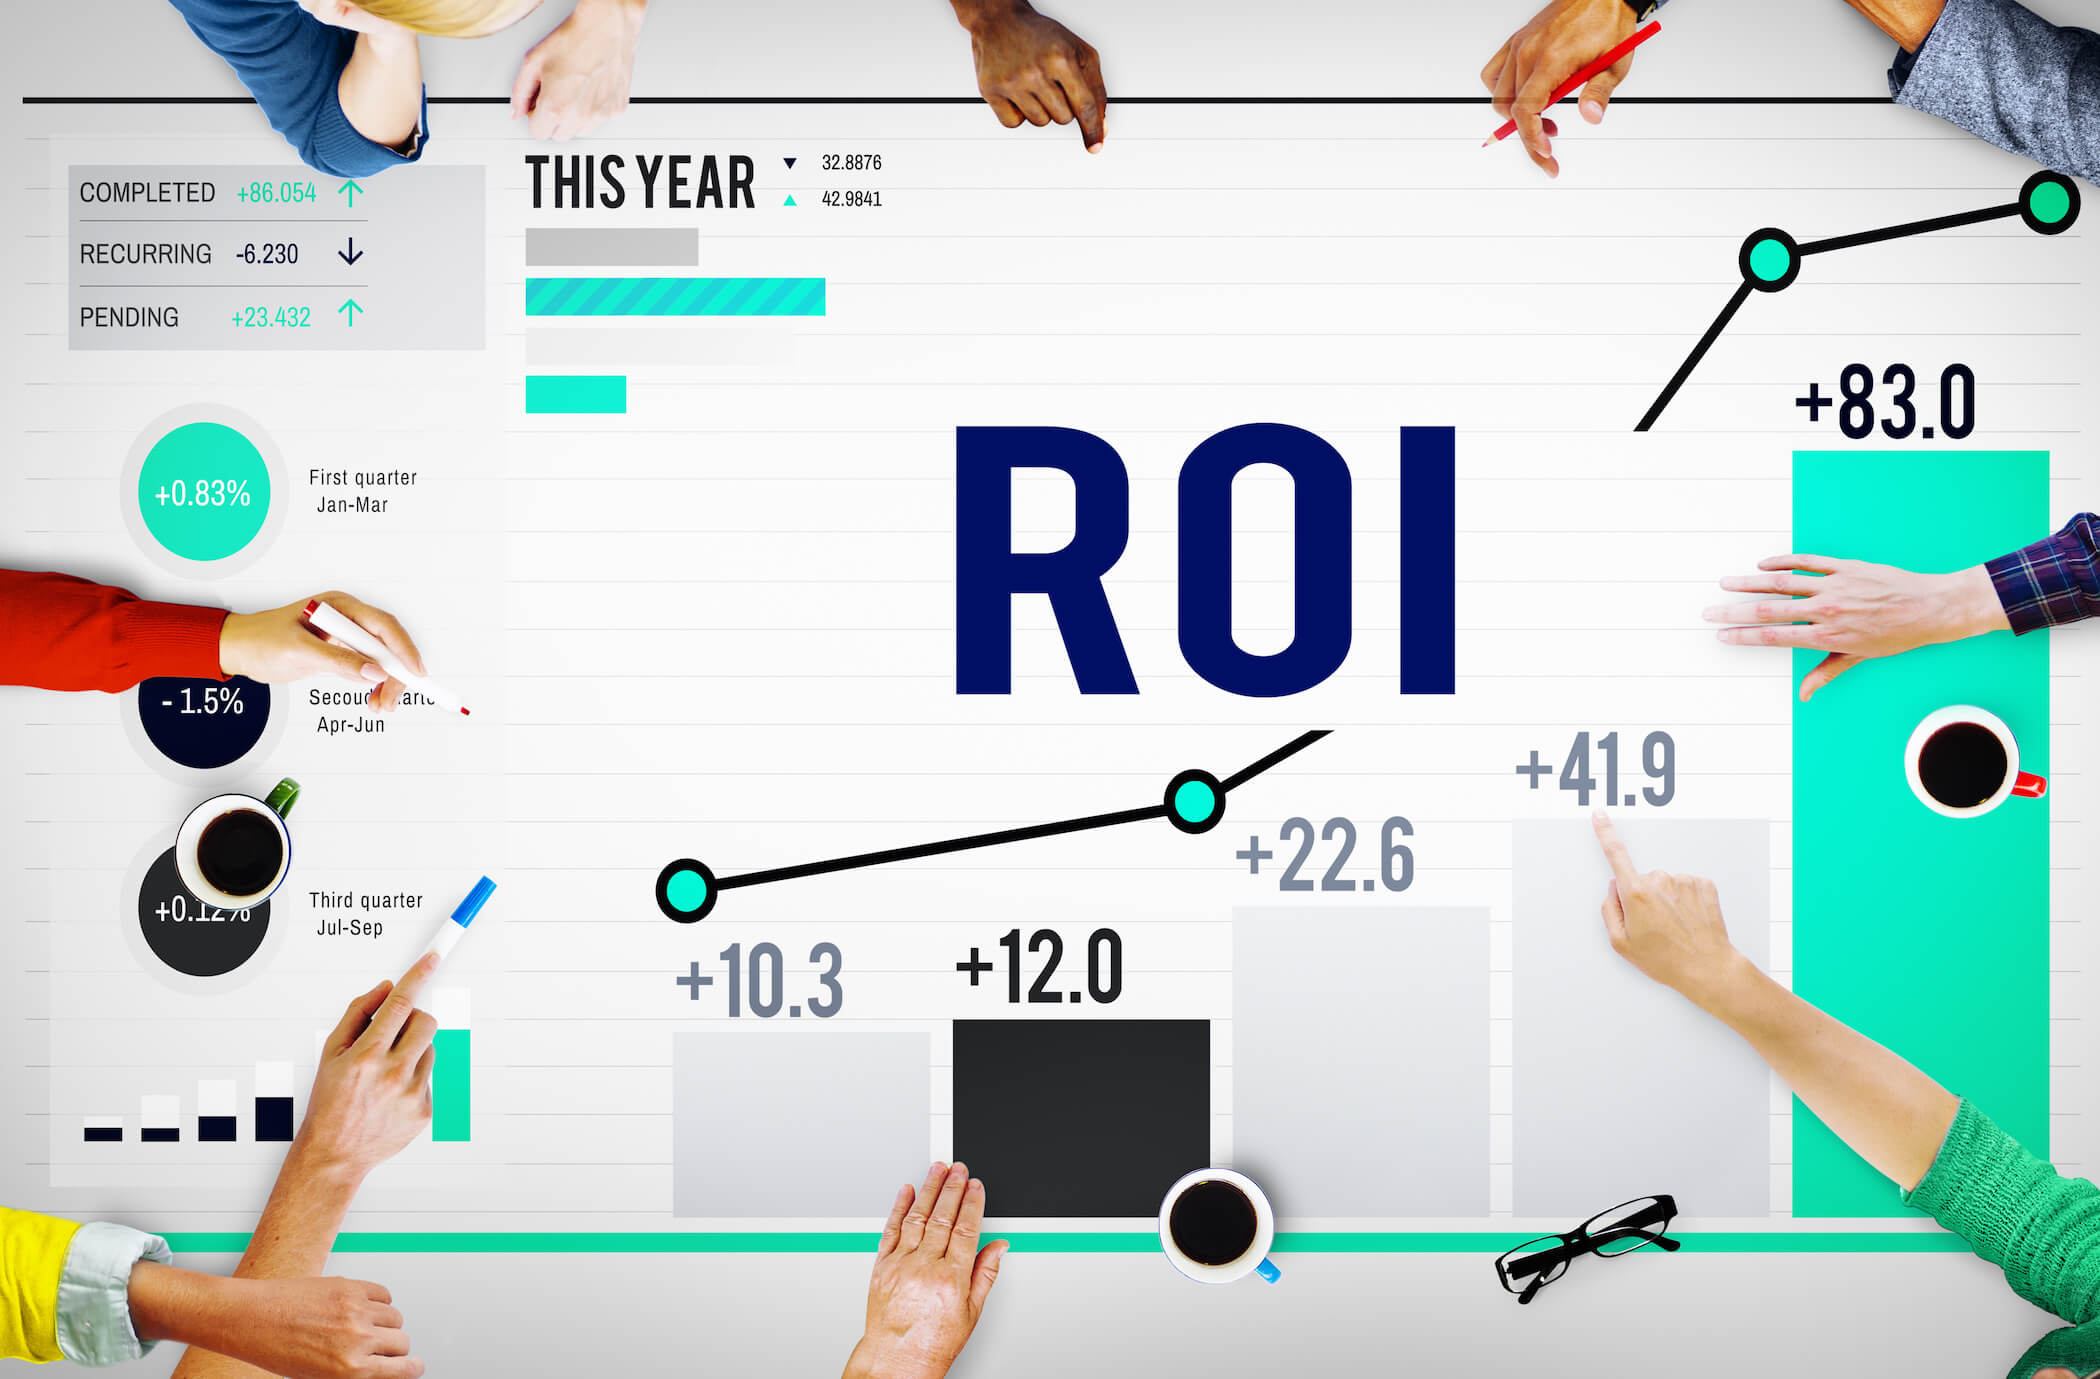 Roi-Return-On-Investment-Impressions-webound-marketing-1.jpg